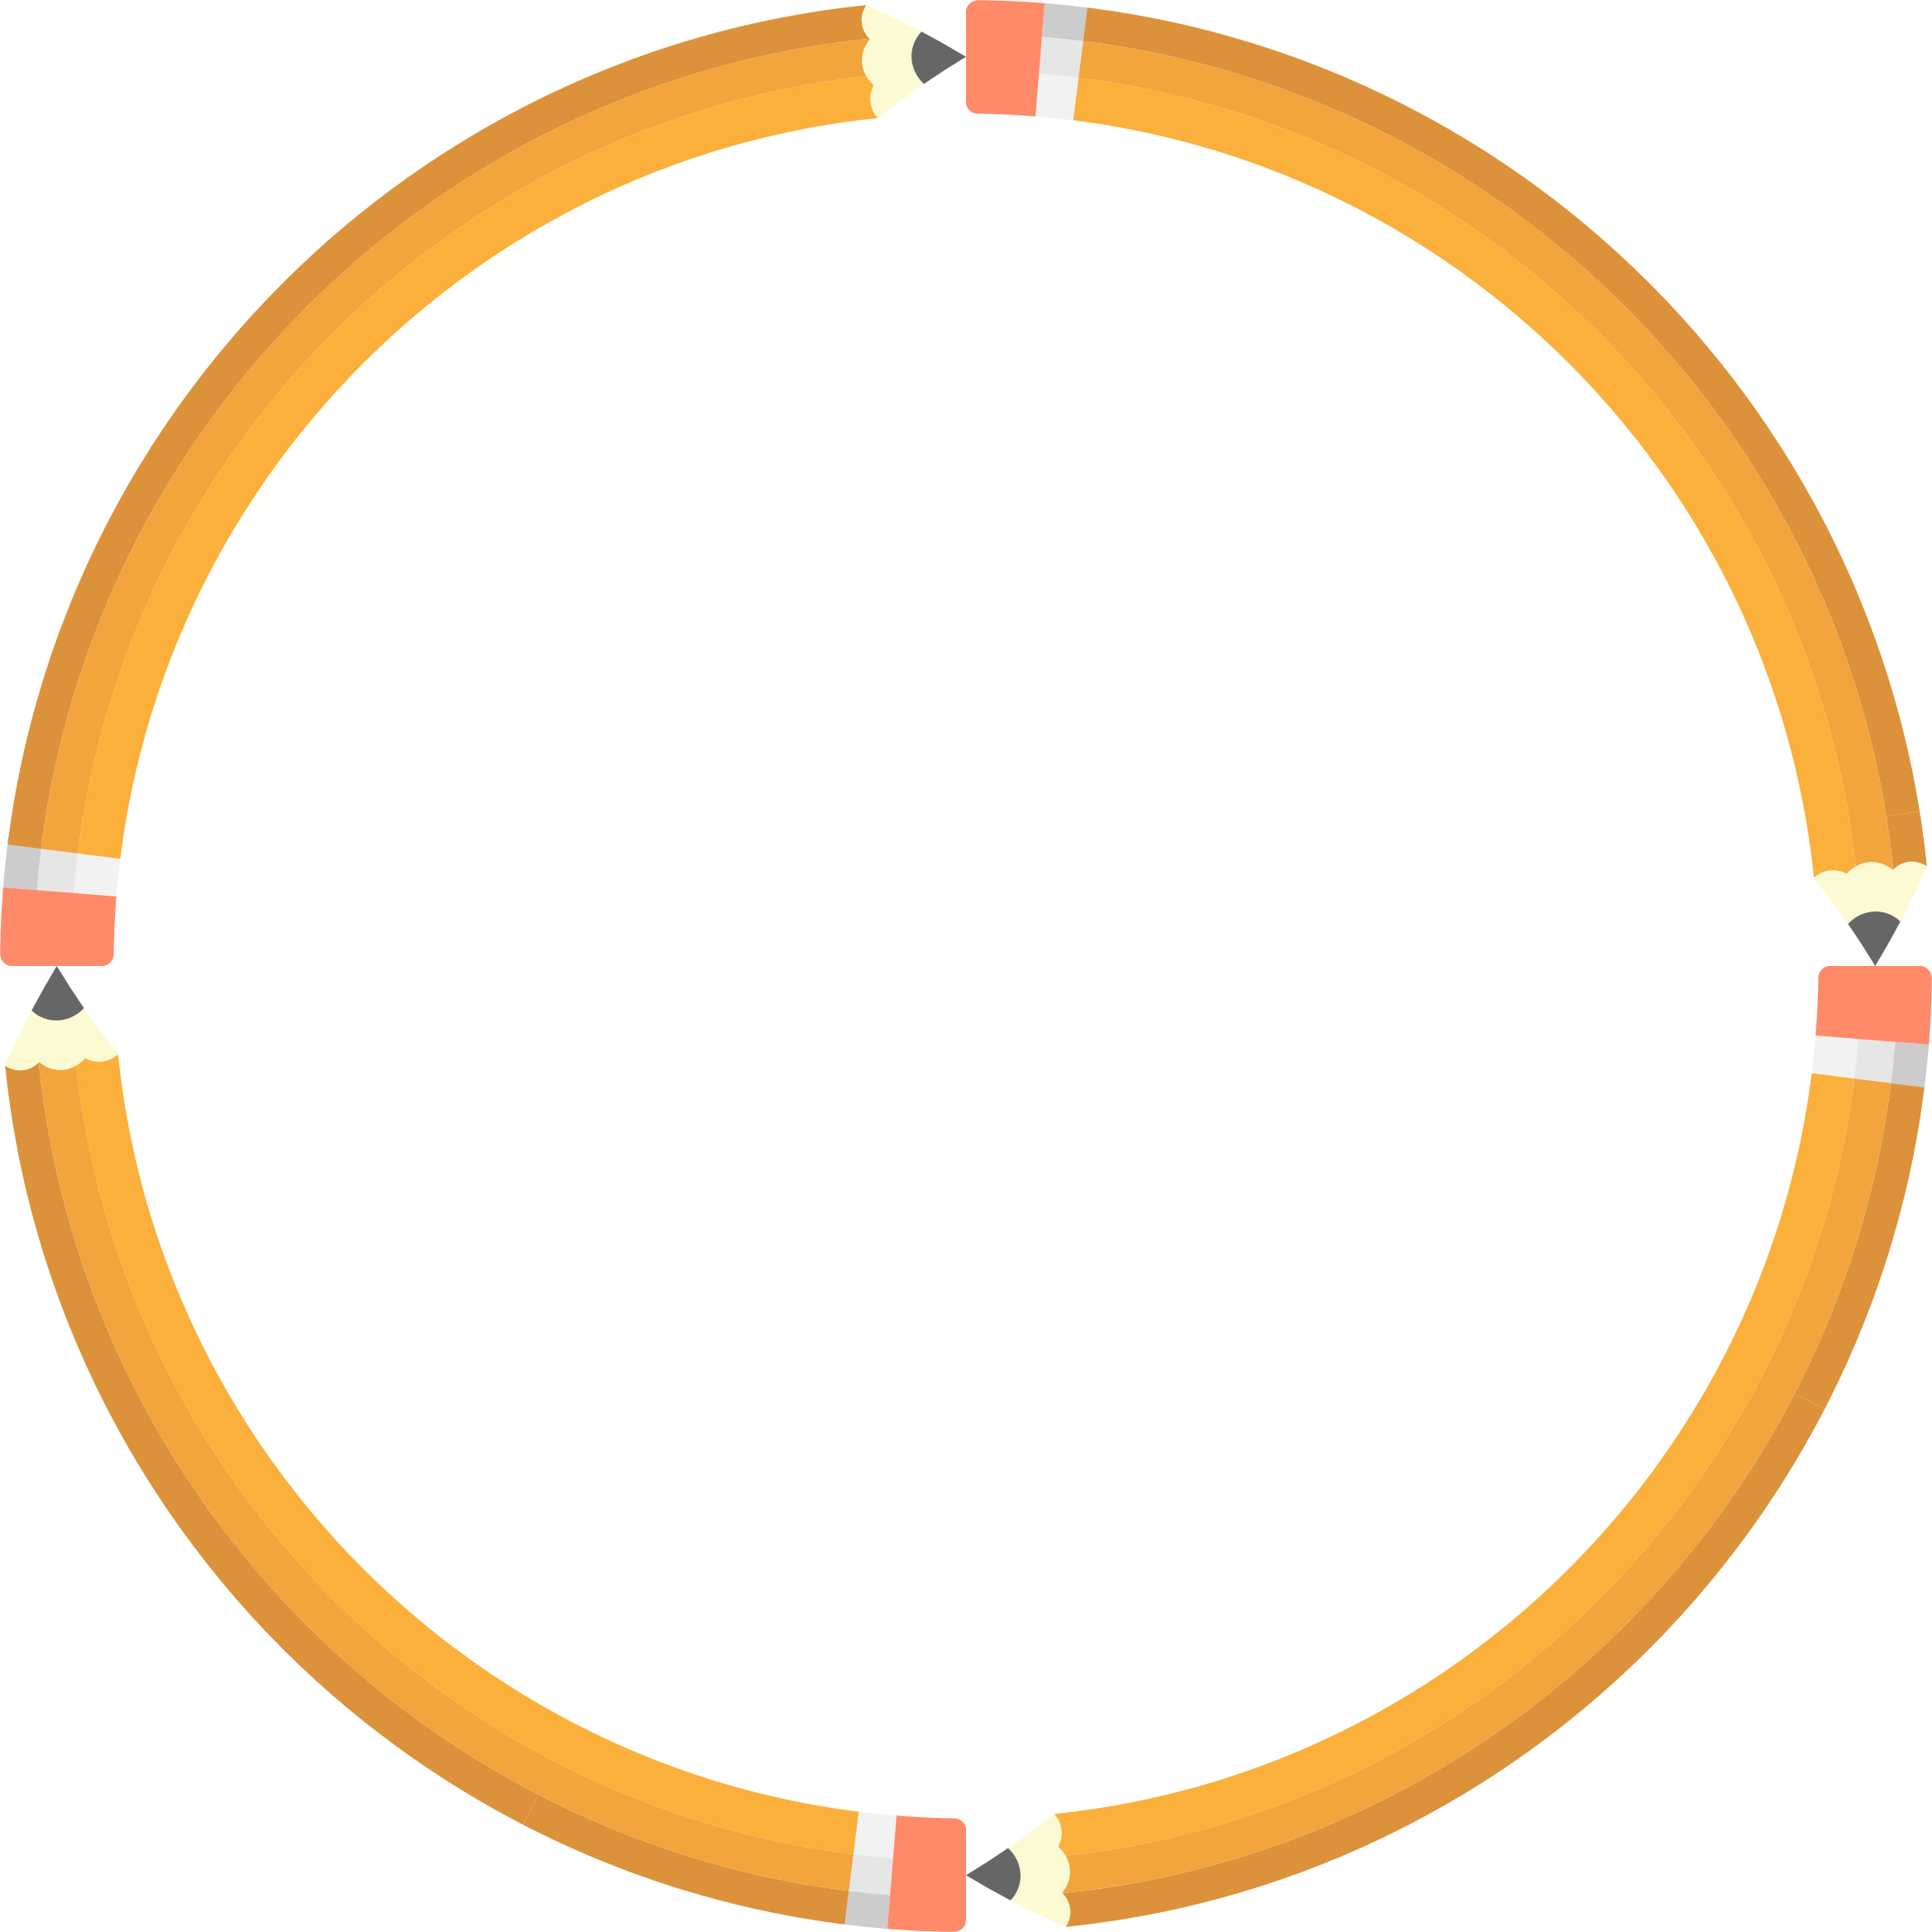 Pencil circle png. Icons free and downloads